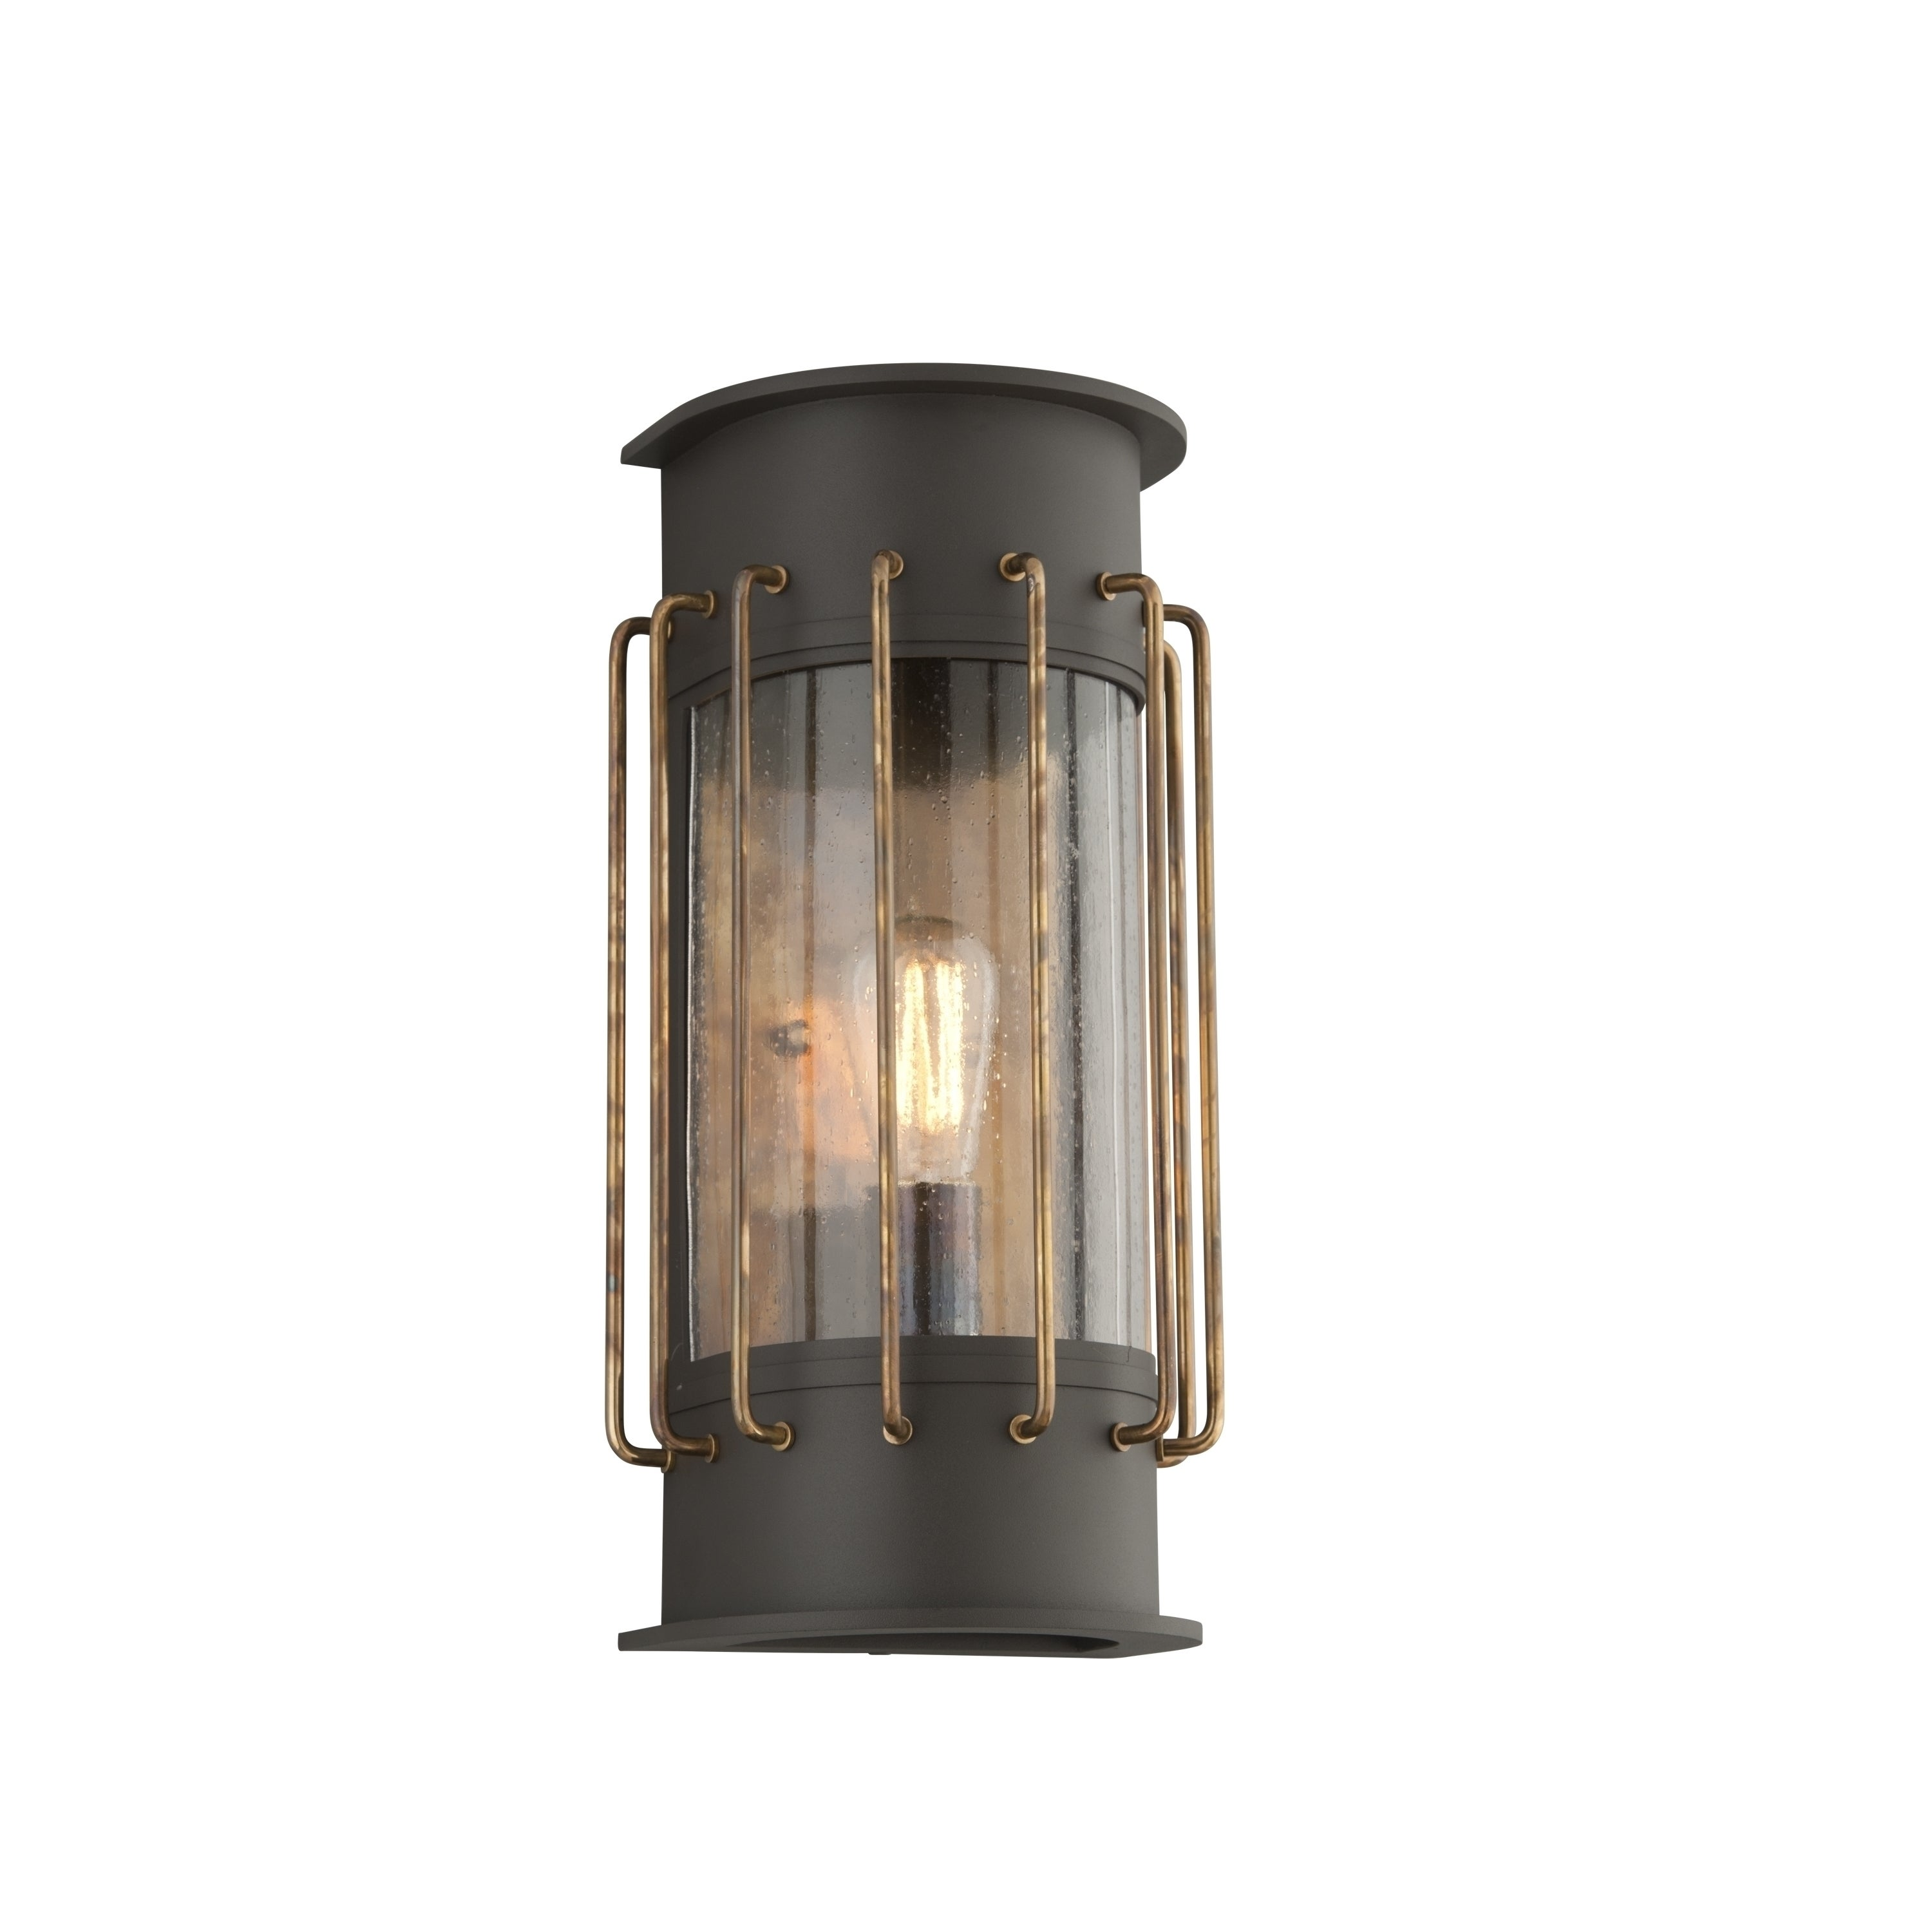 Troy Lighting Cabot 19-light Large Wall Sconce